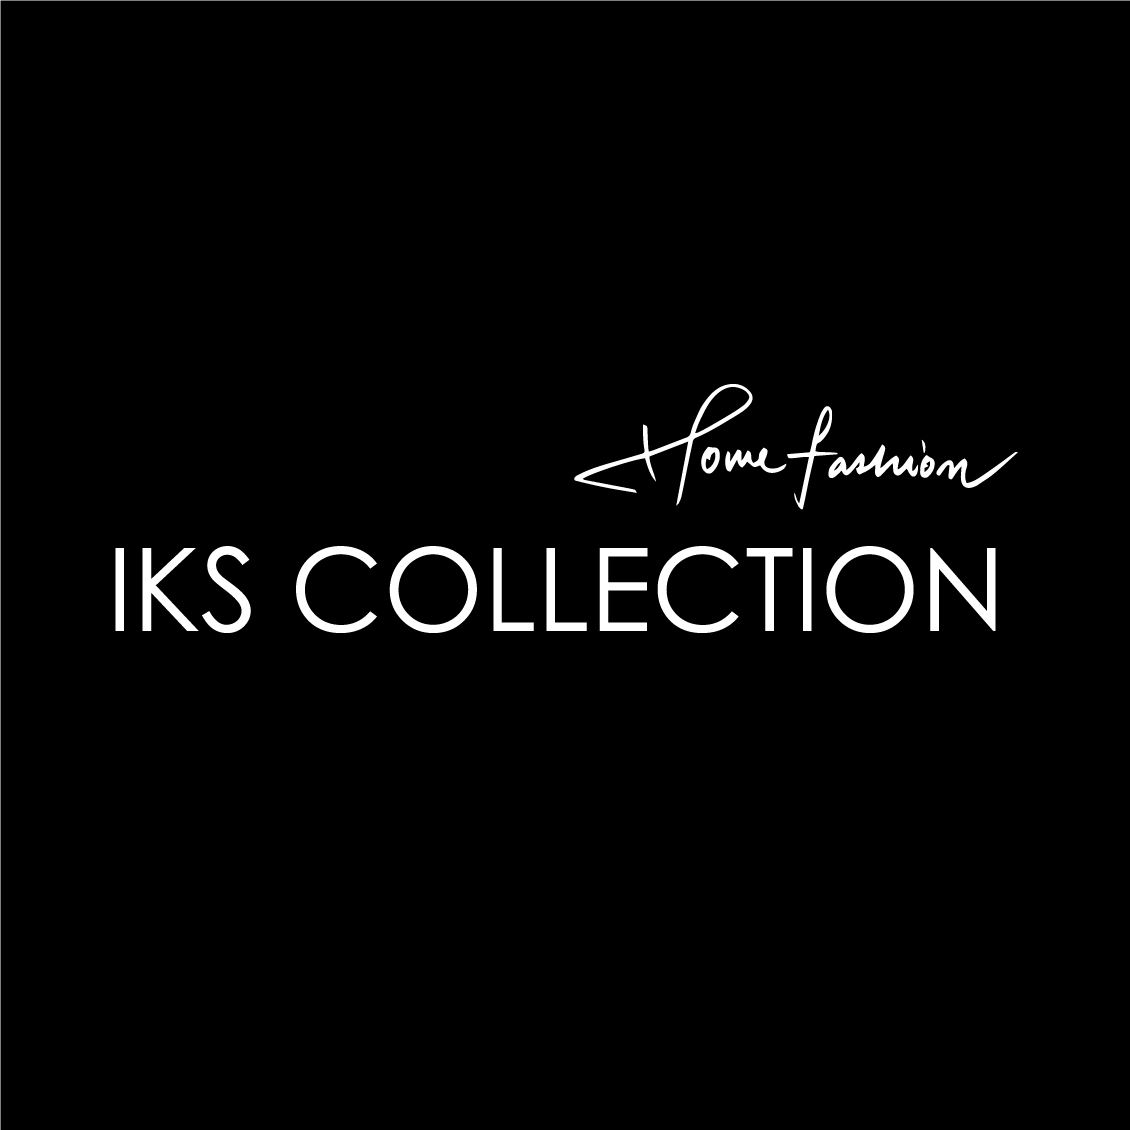 IKS COLLECTION / Home Fasion